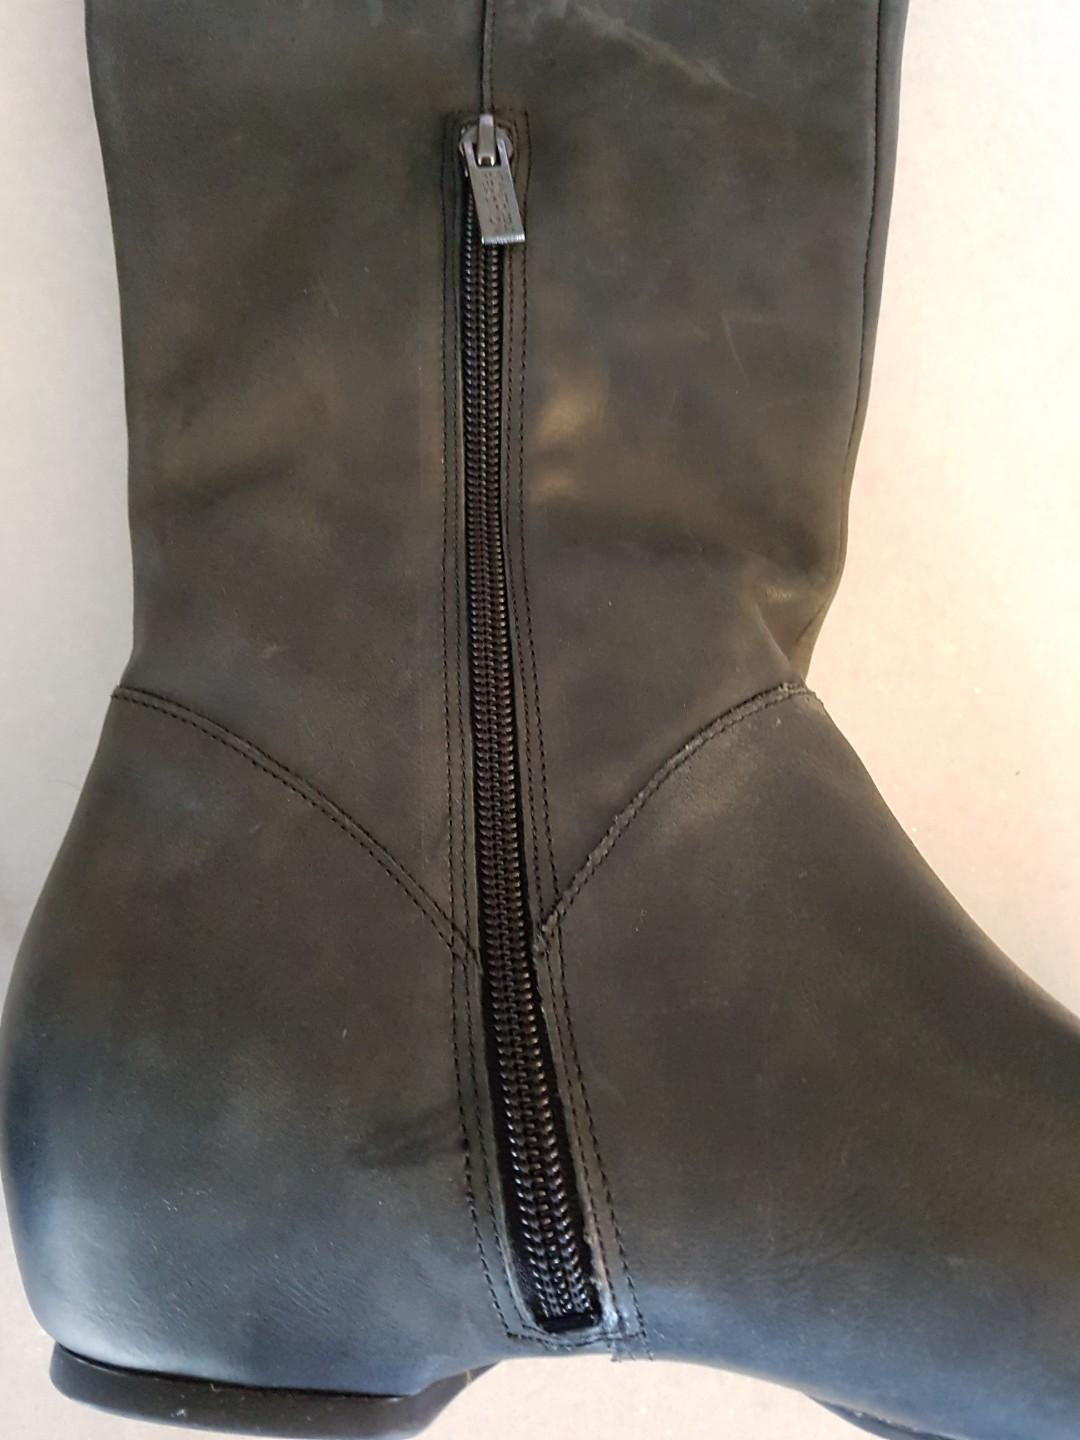 Kenneth Cole Reaction Women's Bard Trick over the knee boots, size 8